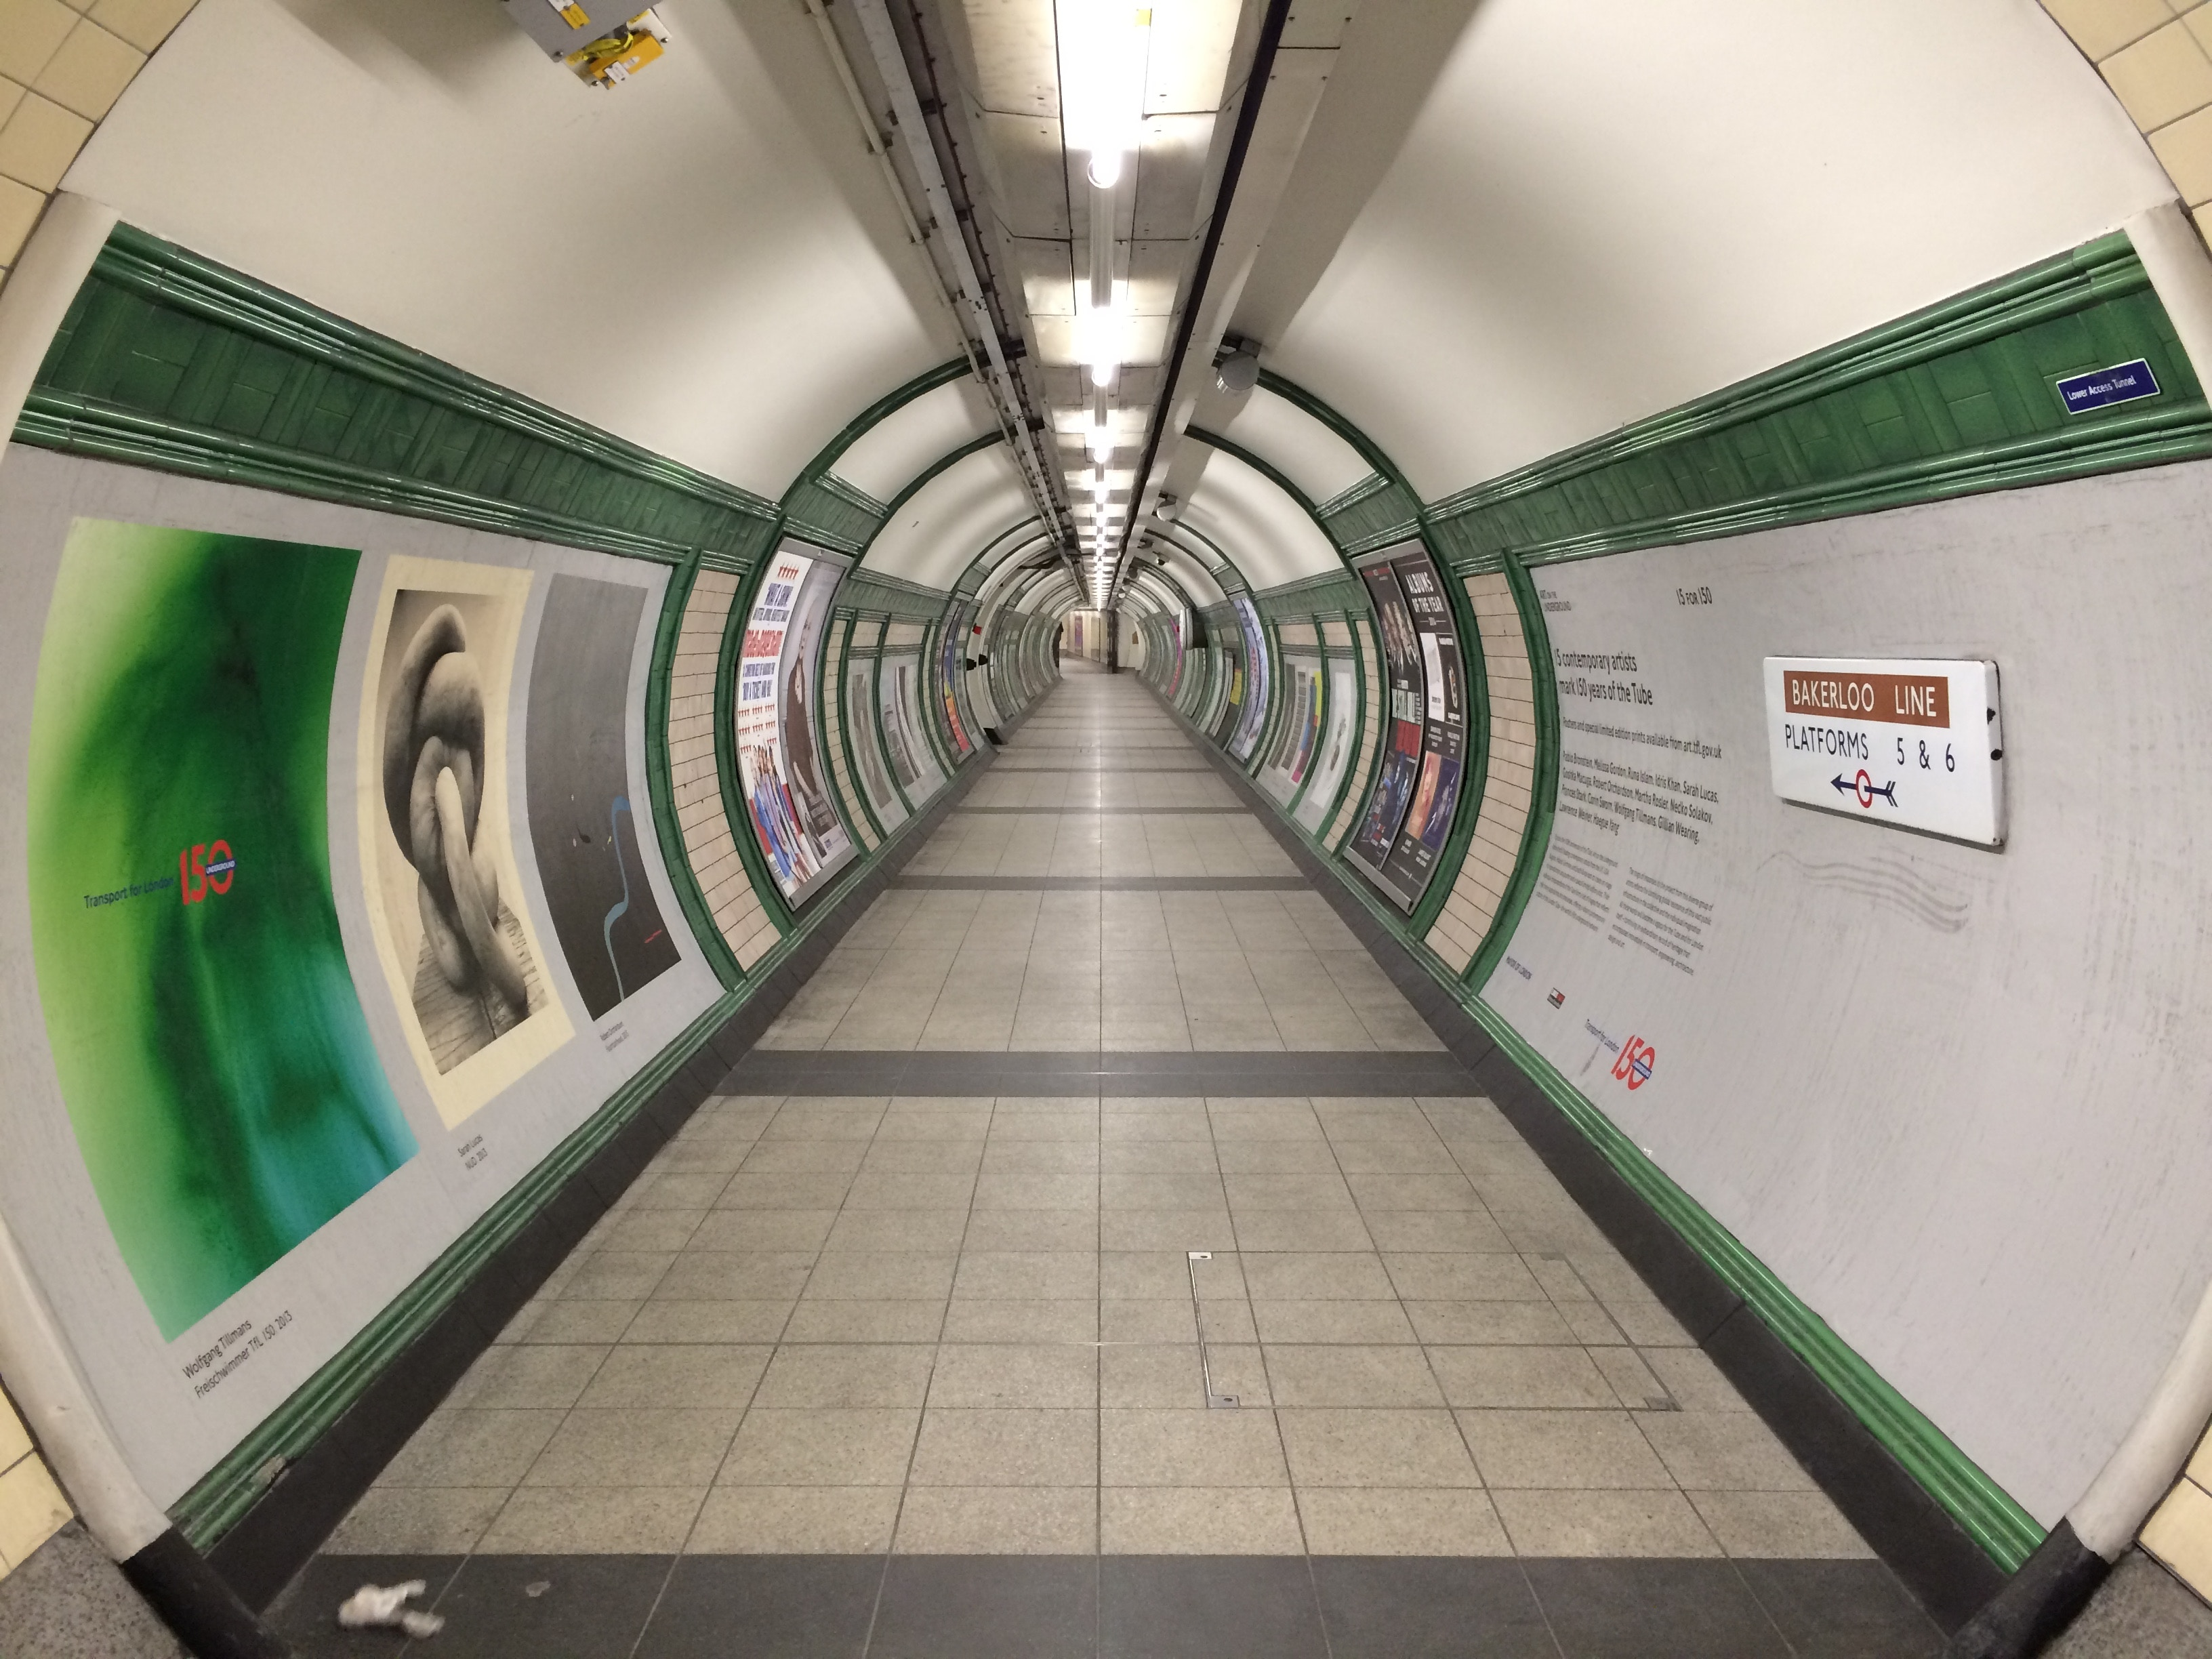 The Tube will soon have internet between underground stations